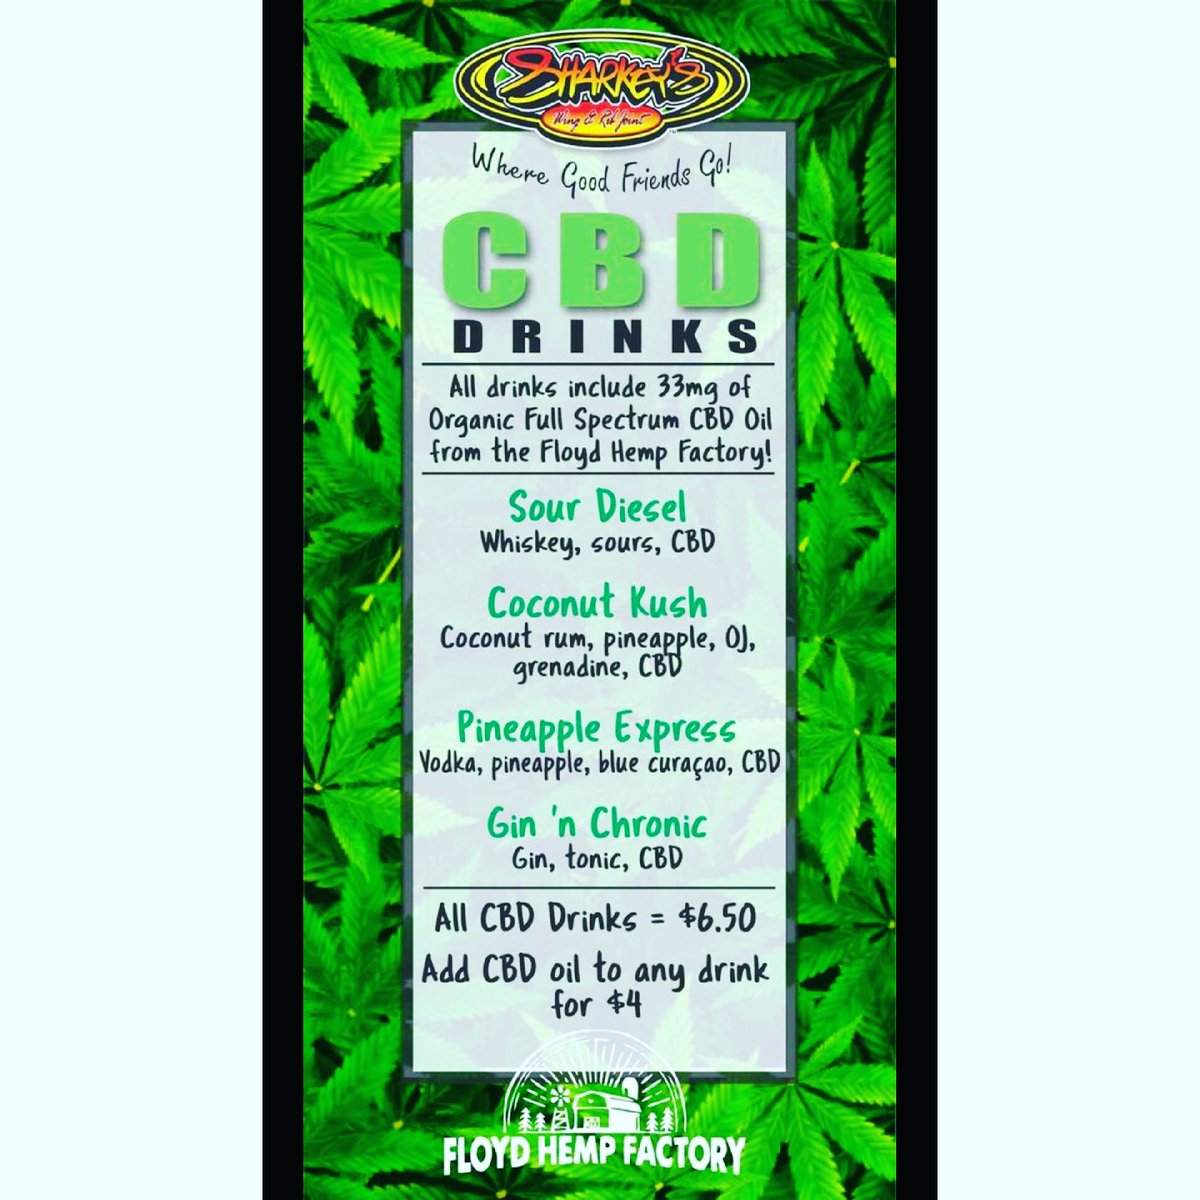 CBD Drinks are here!!!  We have partnered with the Floyd Hemp Factory to bring you the finest CBD oil that can be added to any drink!  #WhereGoodFriendsGo #CBD #cbddrinks #cbdoil #cbdproducts #cbdhealth #cbdwellness #cbdbenefitspic.twitter.com/GUC6dve47N